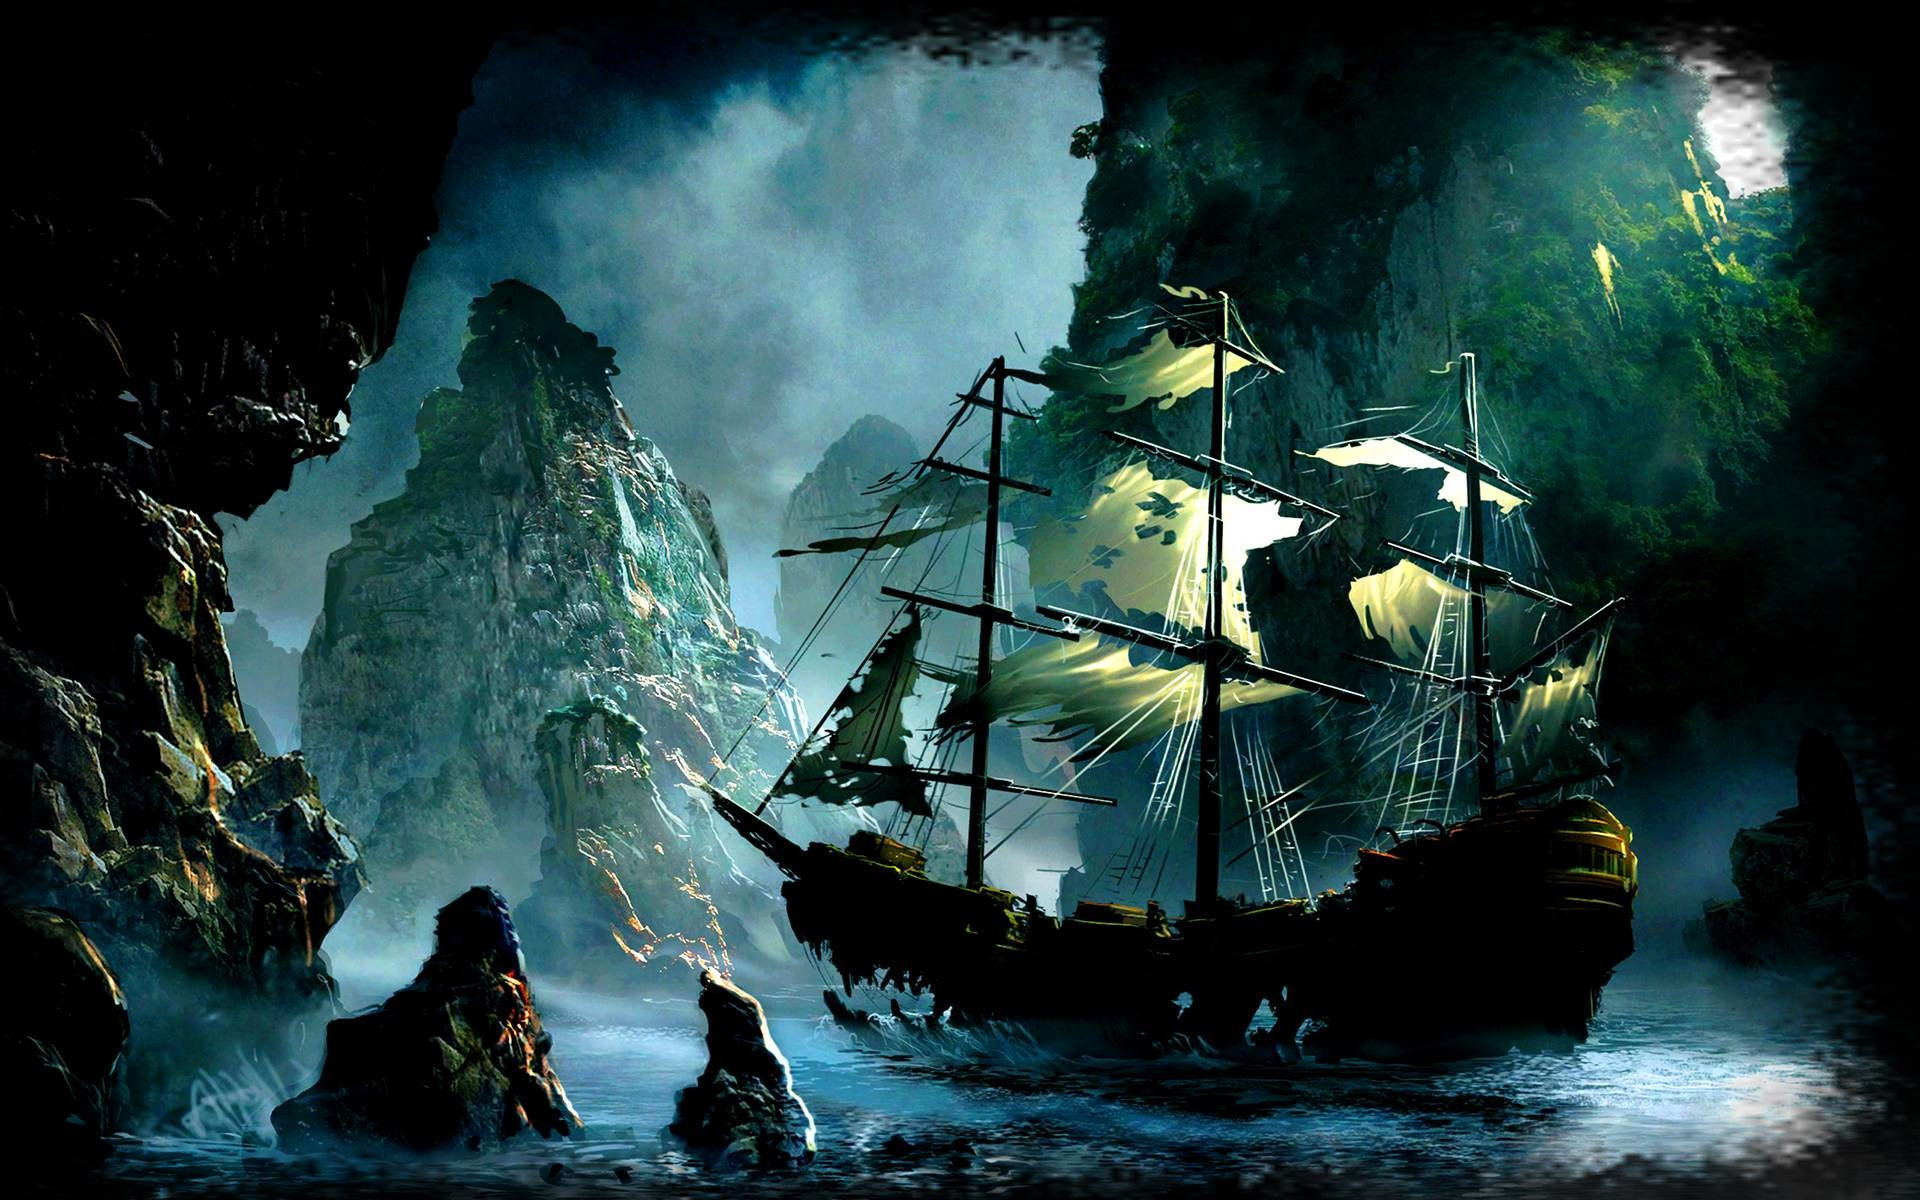 Pirate Ship Wallpapers on